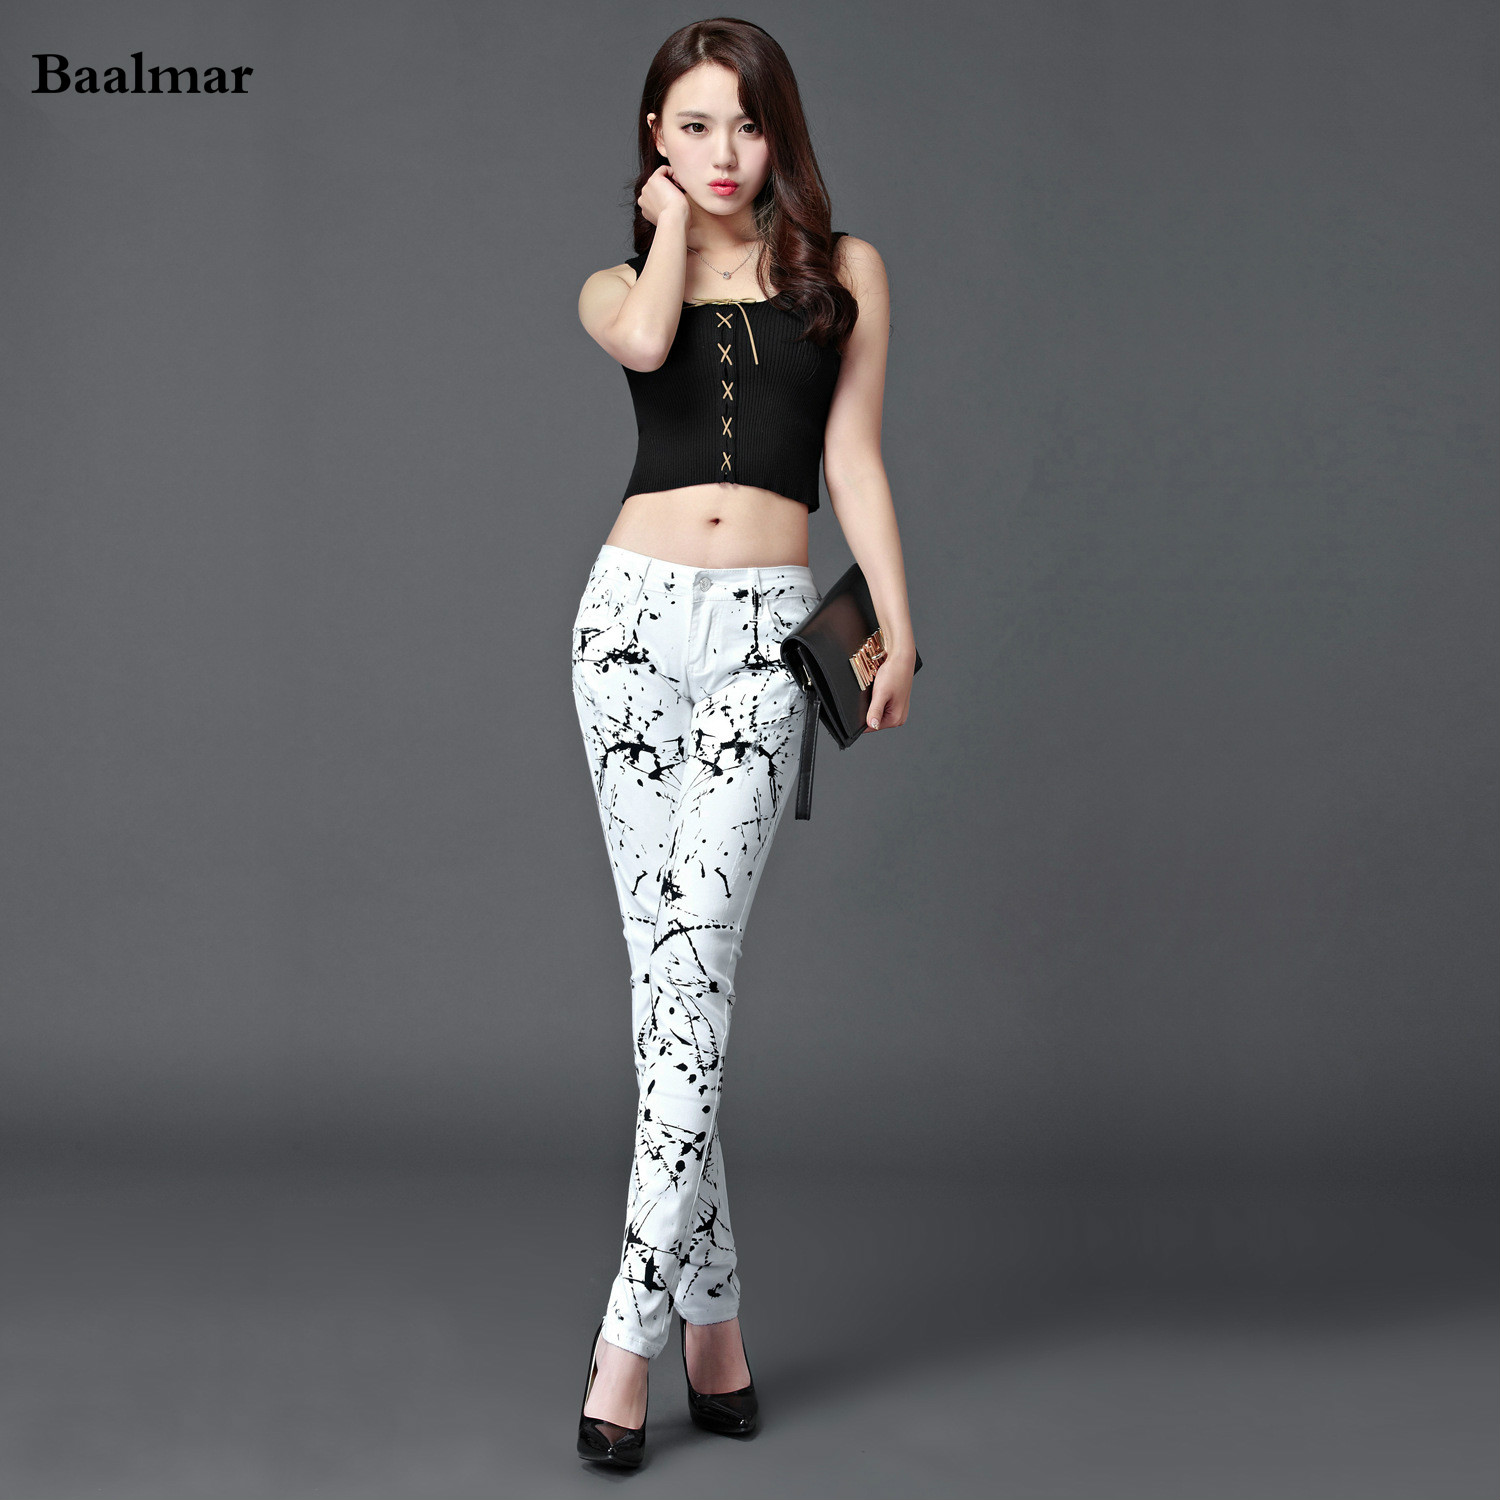 Baalmar 2017 Spring Printing High Quality Woman Jeans White Casual Pants Slim Stretch Jeans Pencil Pants